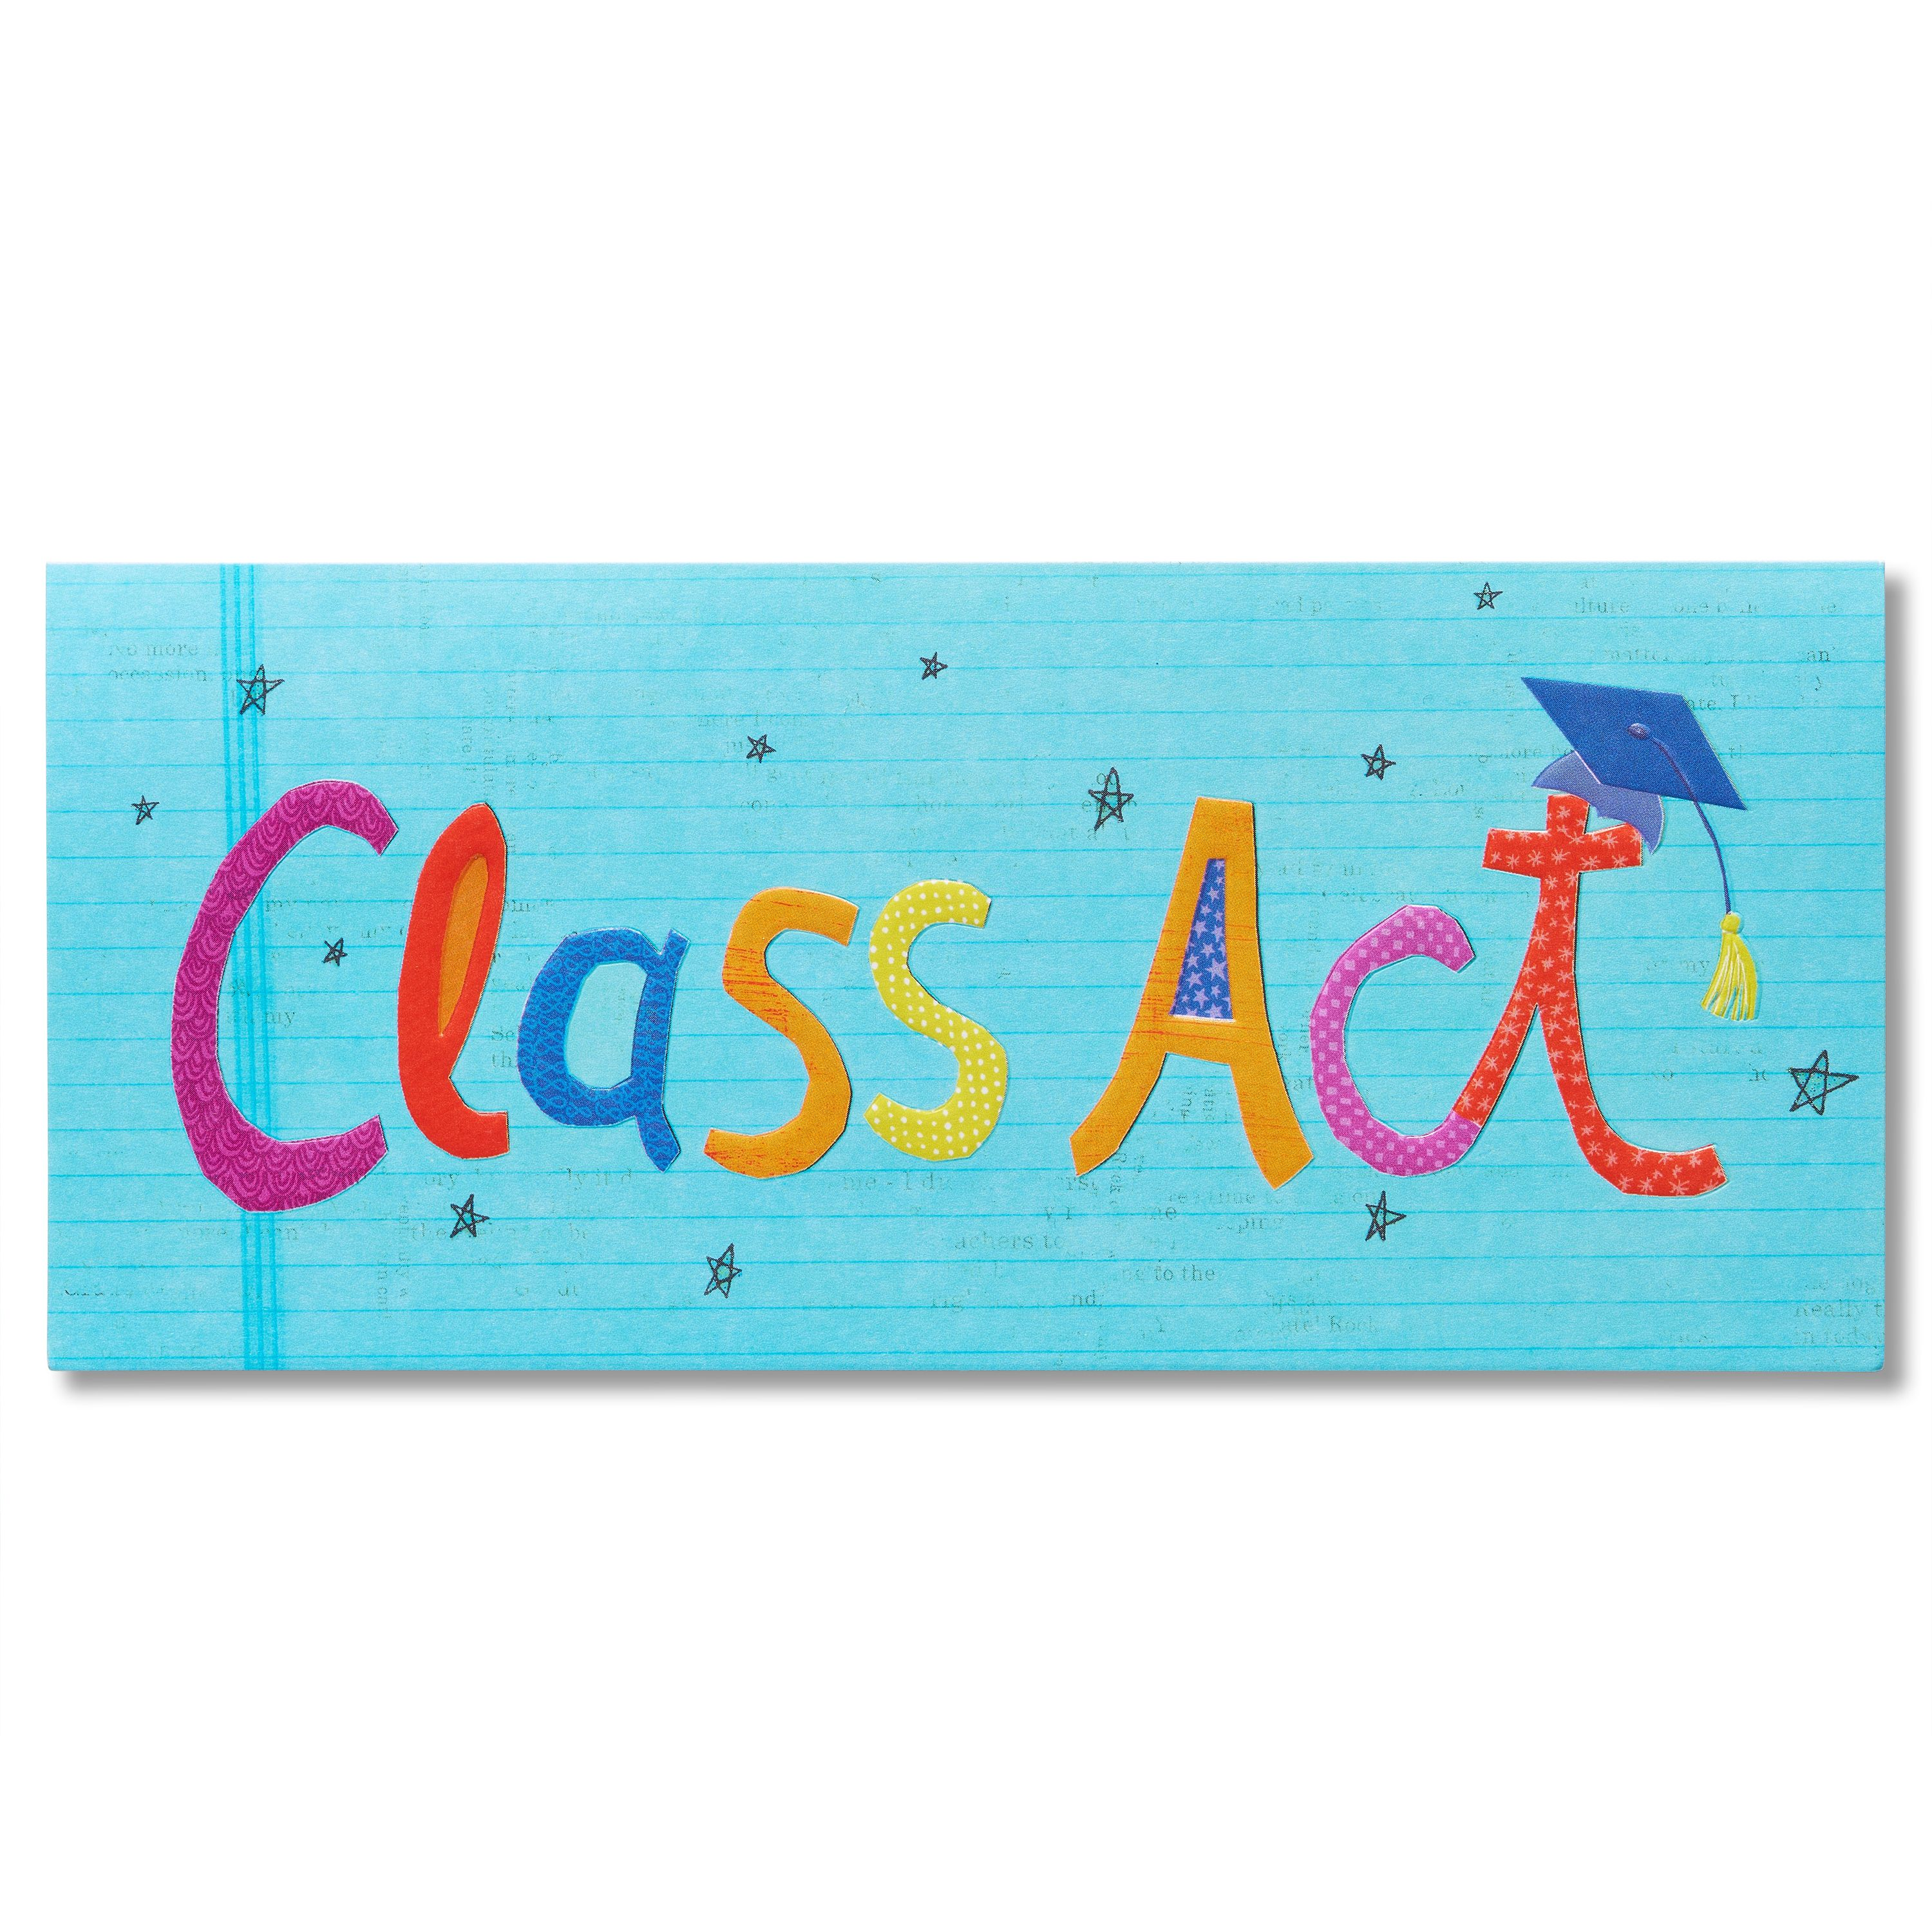 American Greetings Gift Card Holder Graduation Card with Glitter